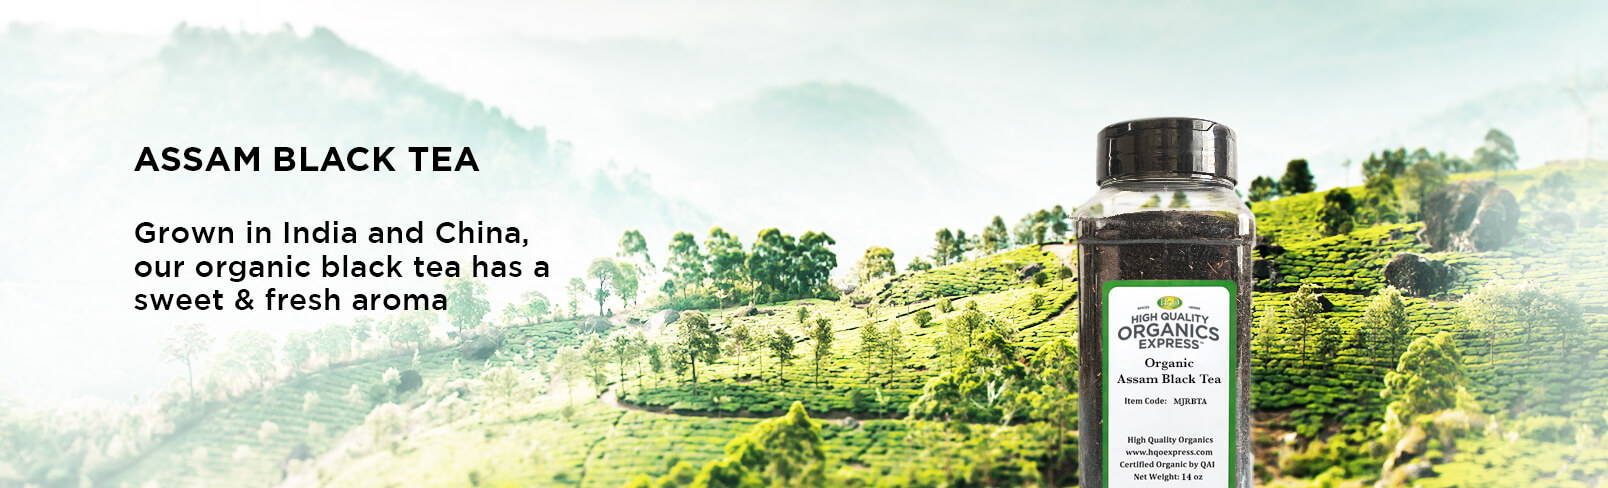 High Quality Organics Express tea field in the background with a jar of tea